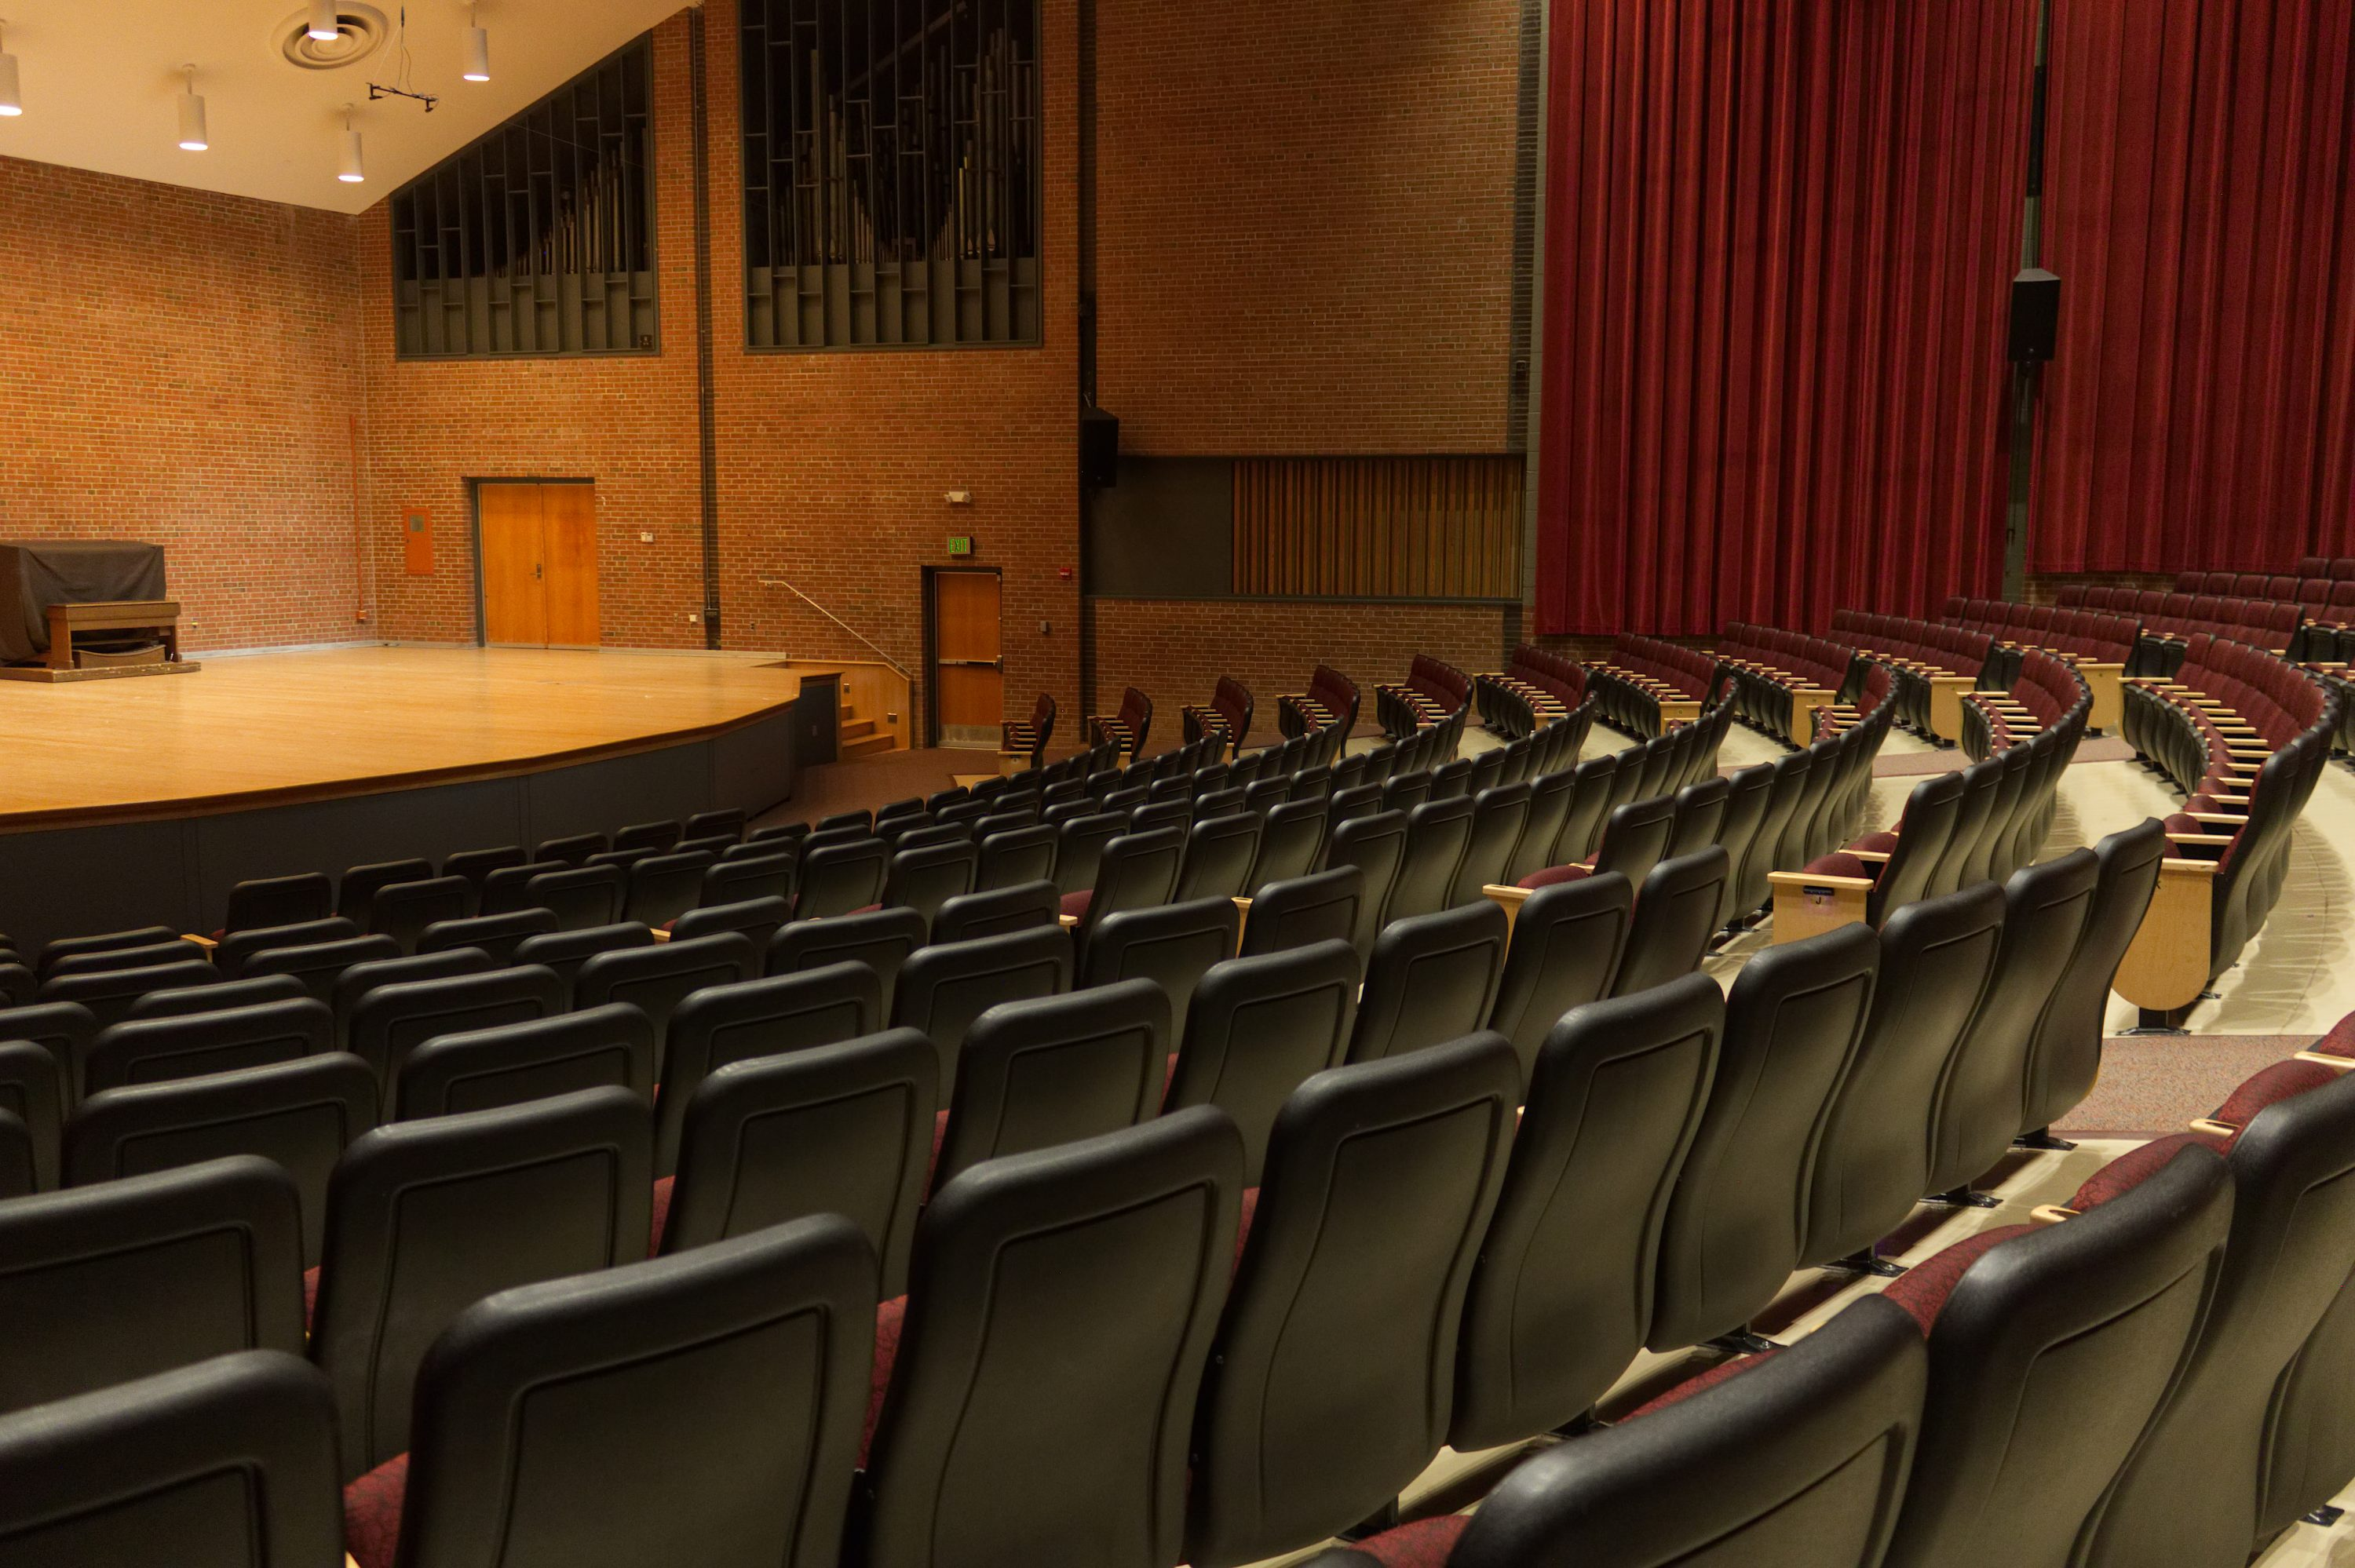 theater seating design towson university